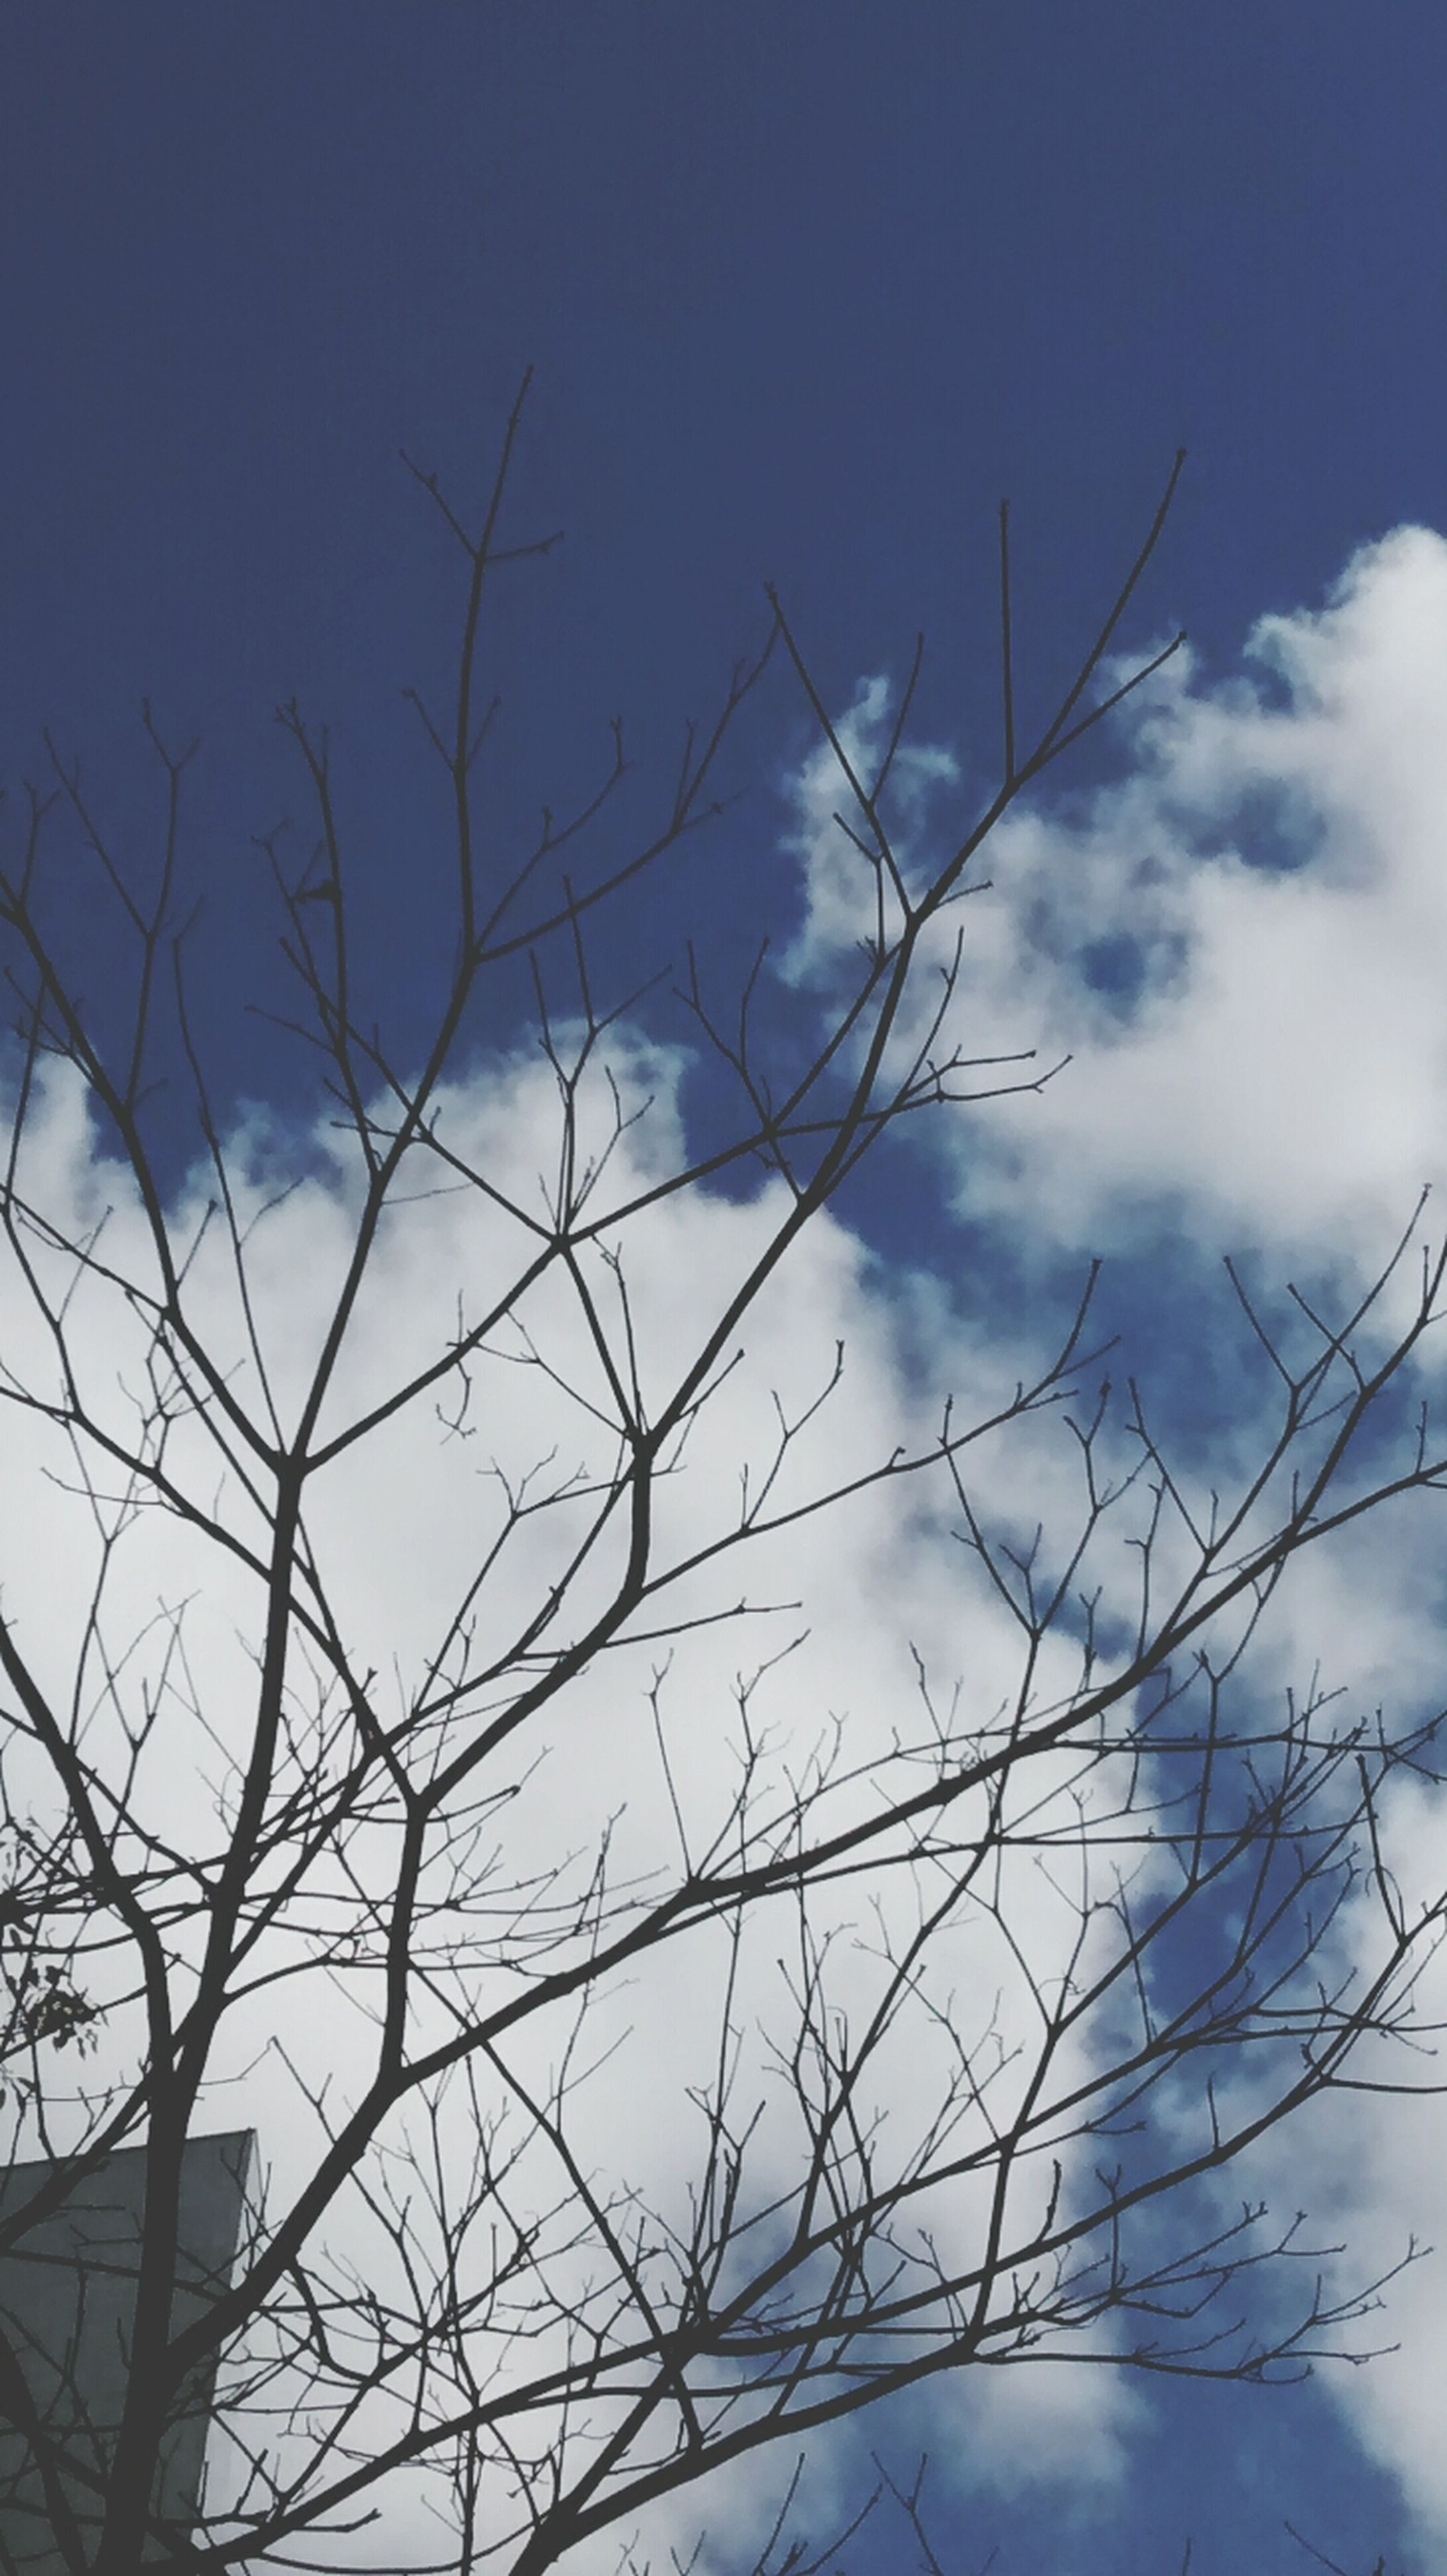 low angle view, bare tree, sky, branch, tree, blue, cloud - sky, nature, cloud, tranquility, beauty in nature, outdoors, day, high section, no people, cloudy, silhouette, scenics, winter, built structure